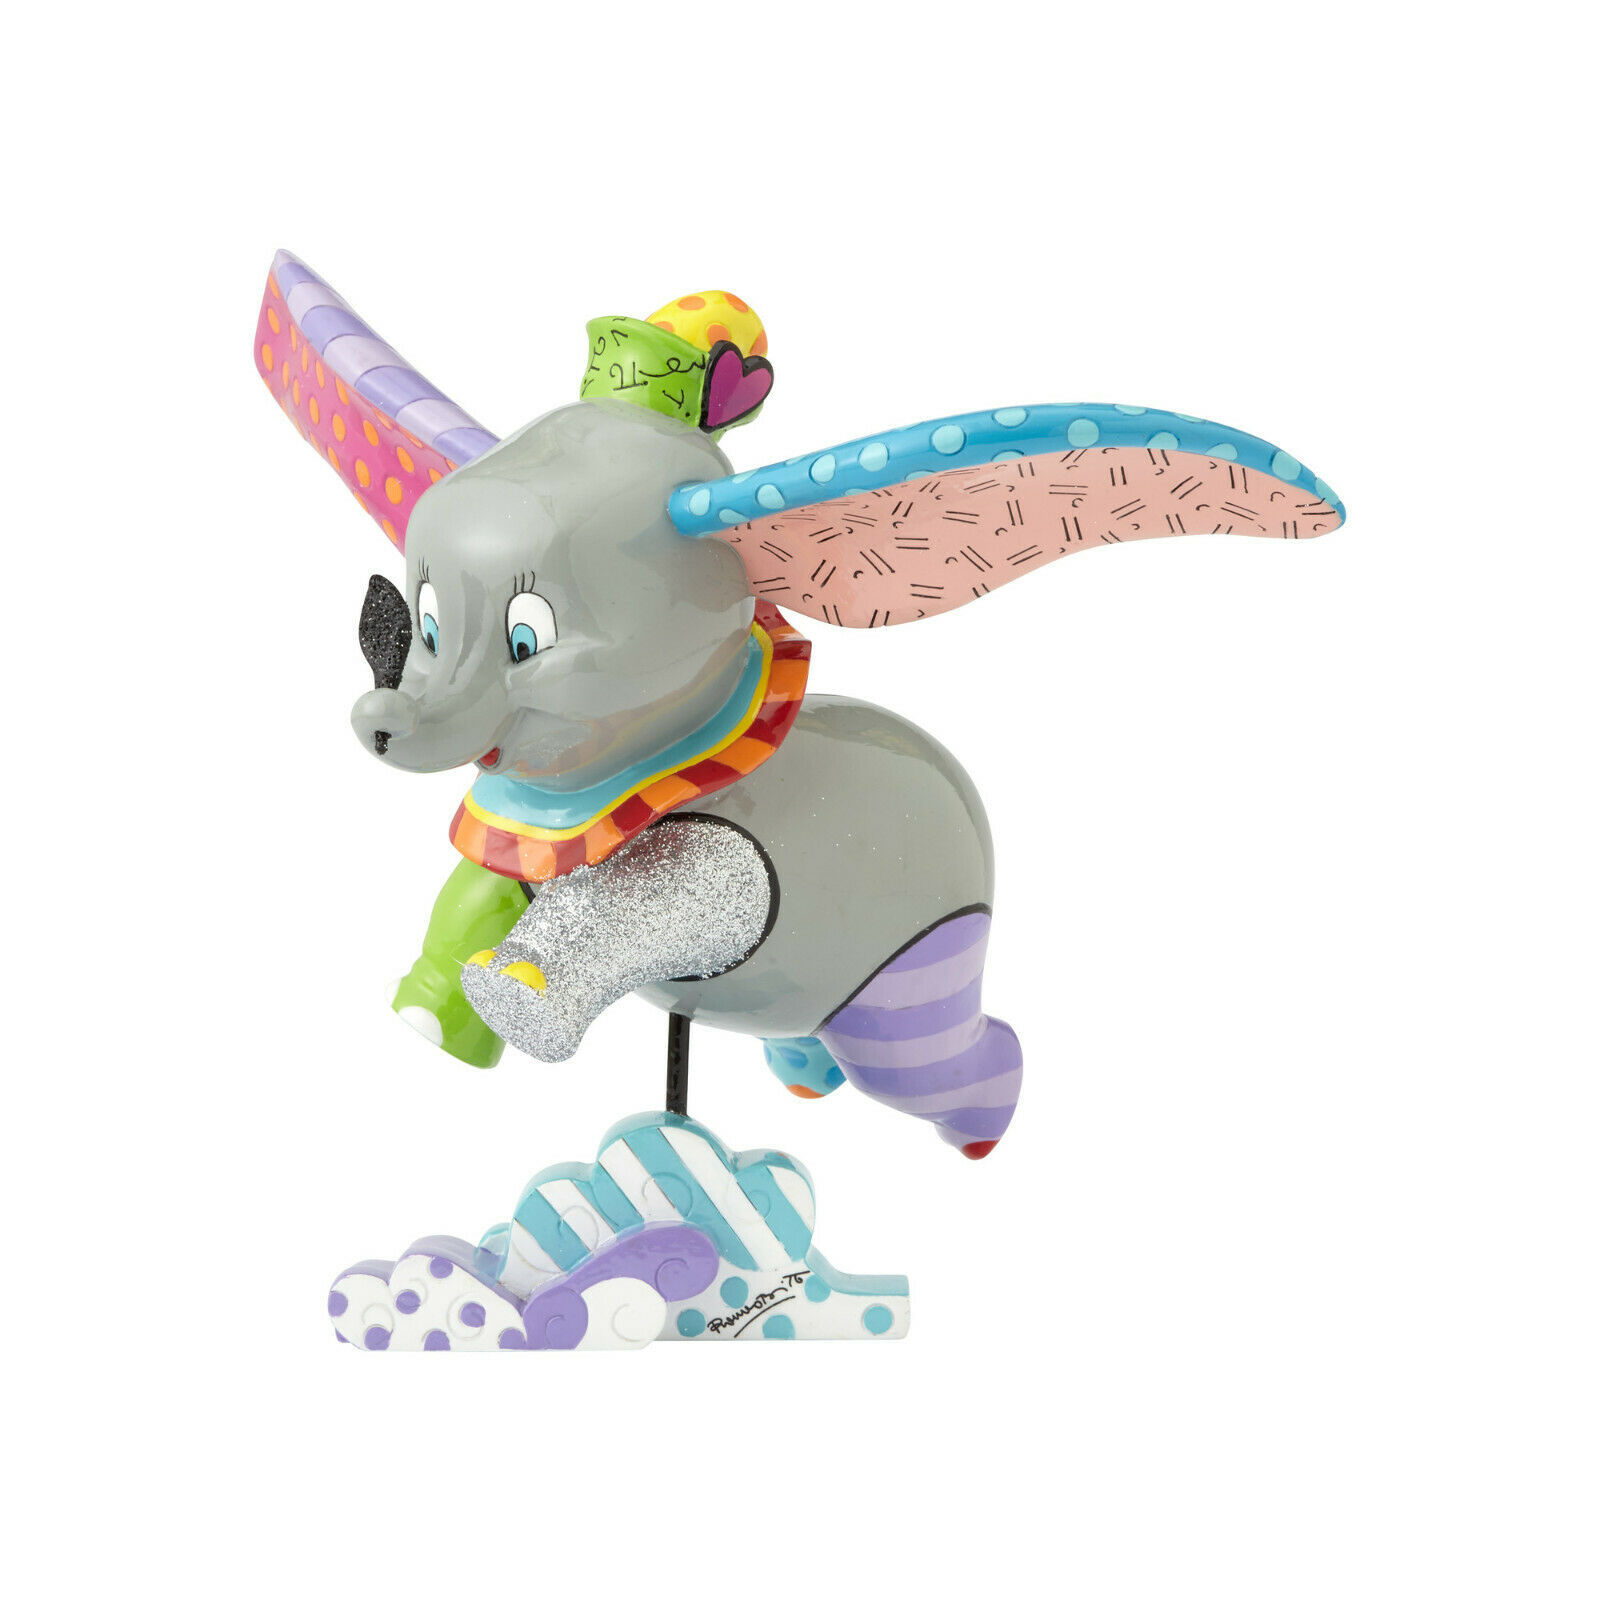 """7.25"""" High Disney Britto Dumbo Figurine Multicolor Hand Painted"""